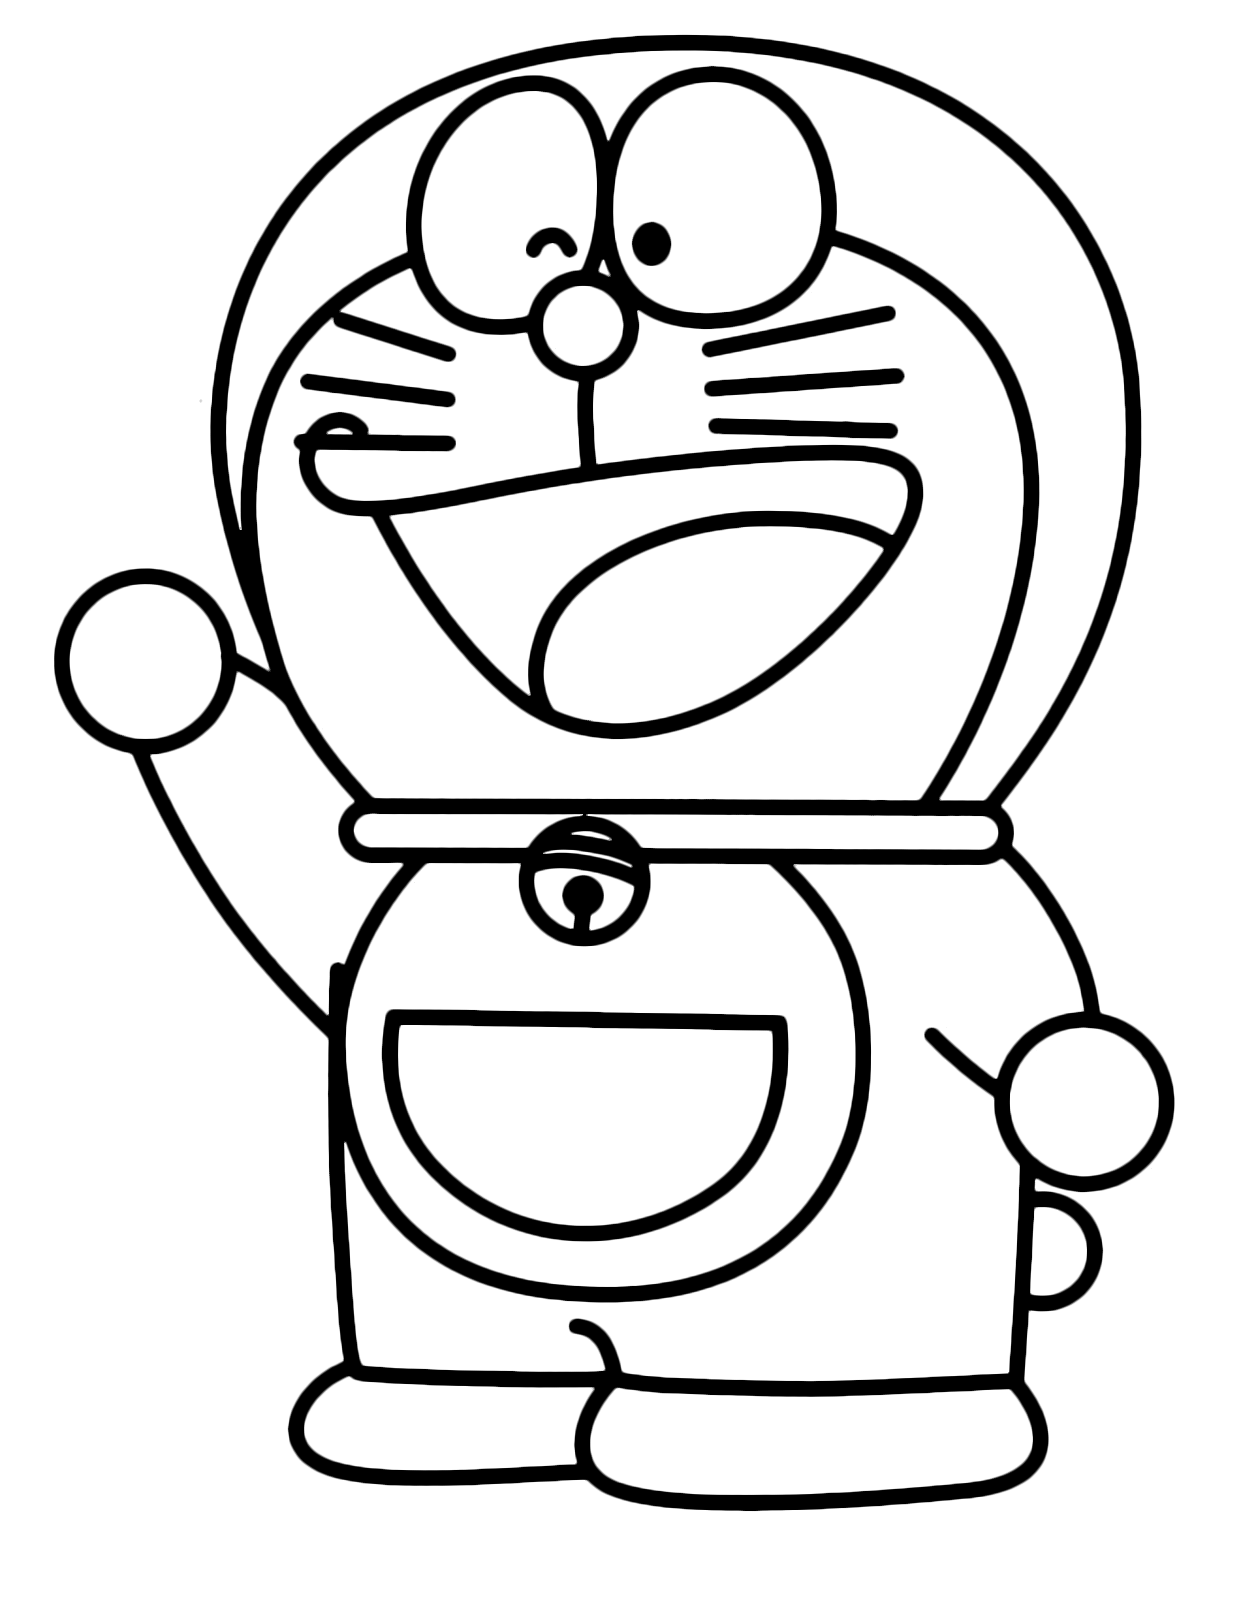 Doraemon - Doraemon is happy and greets with his hand